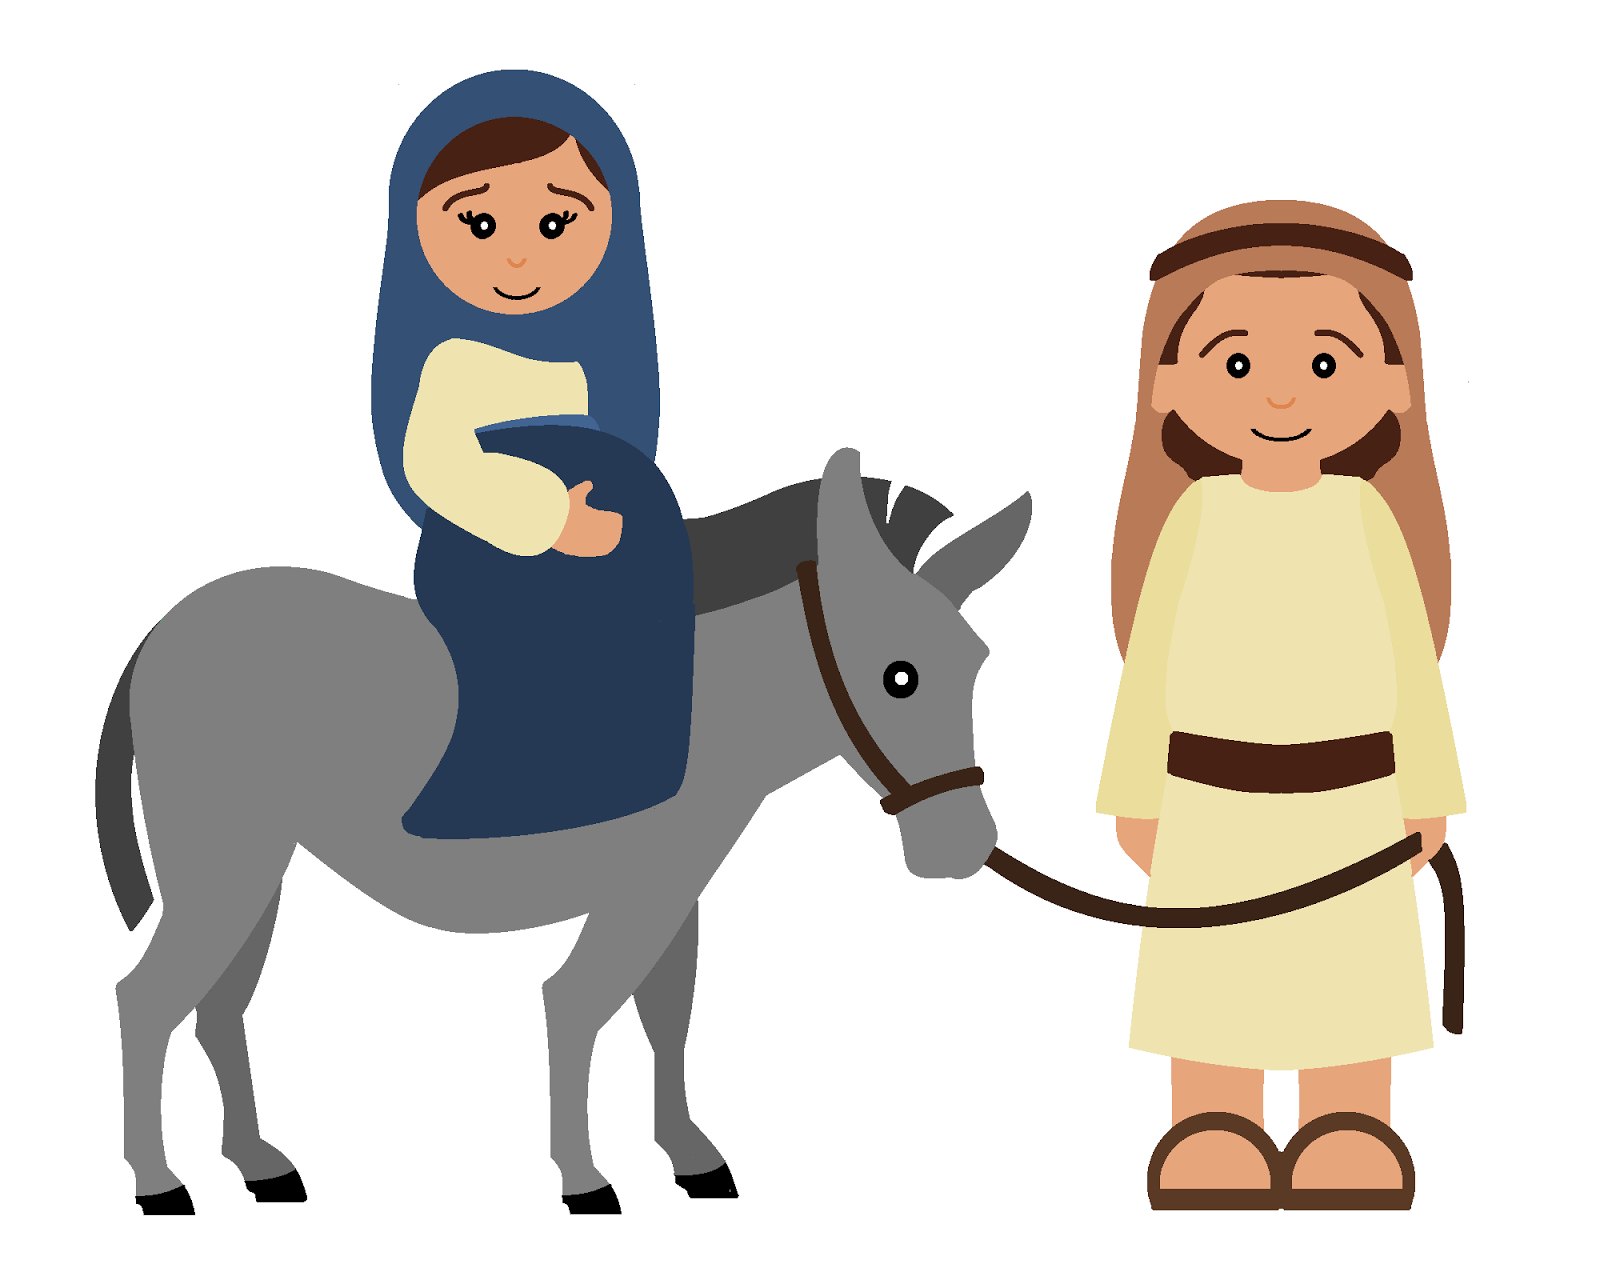 Jesus mary and joseph clipart vector download Mary joseph jesus clipart graphics - ClipartFox vector download